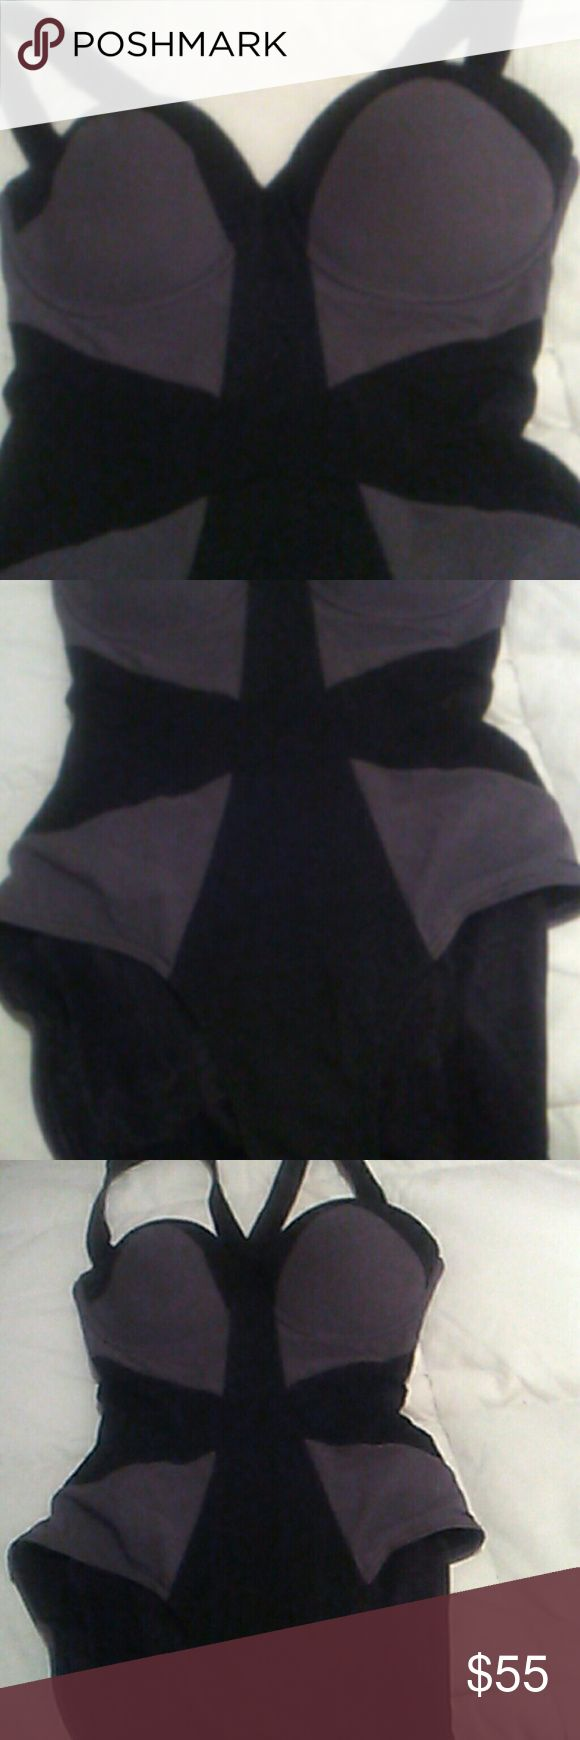 Bodycon Style Criss-Cross back underwear Black and grey color block very flattering underwire bust installed brawl Criss-Cross back for lots of support color blocking for added fluttering size 12 made by Spanx SPANX Swim One Pieces